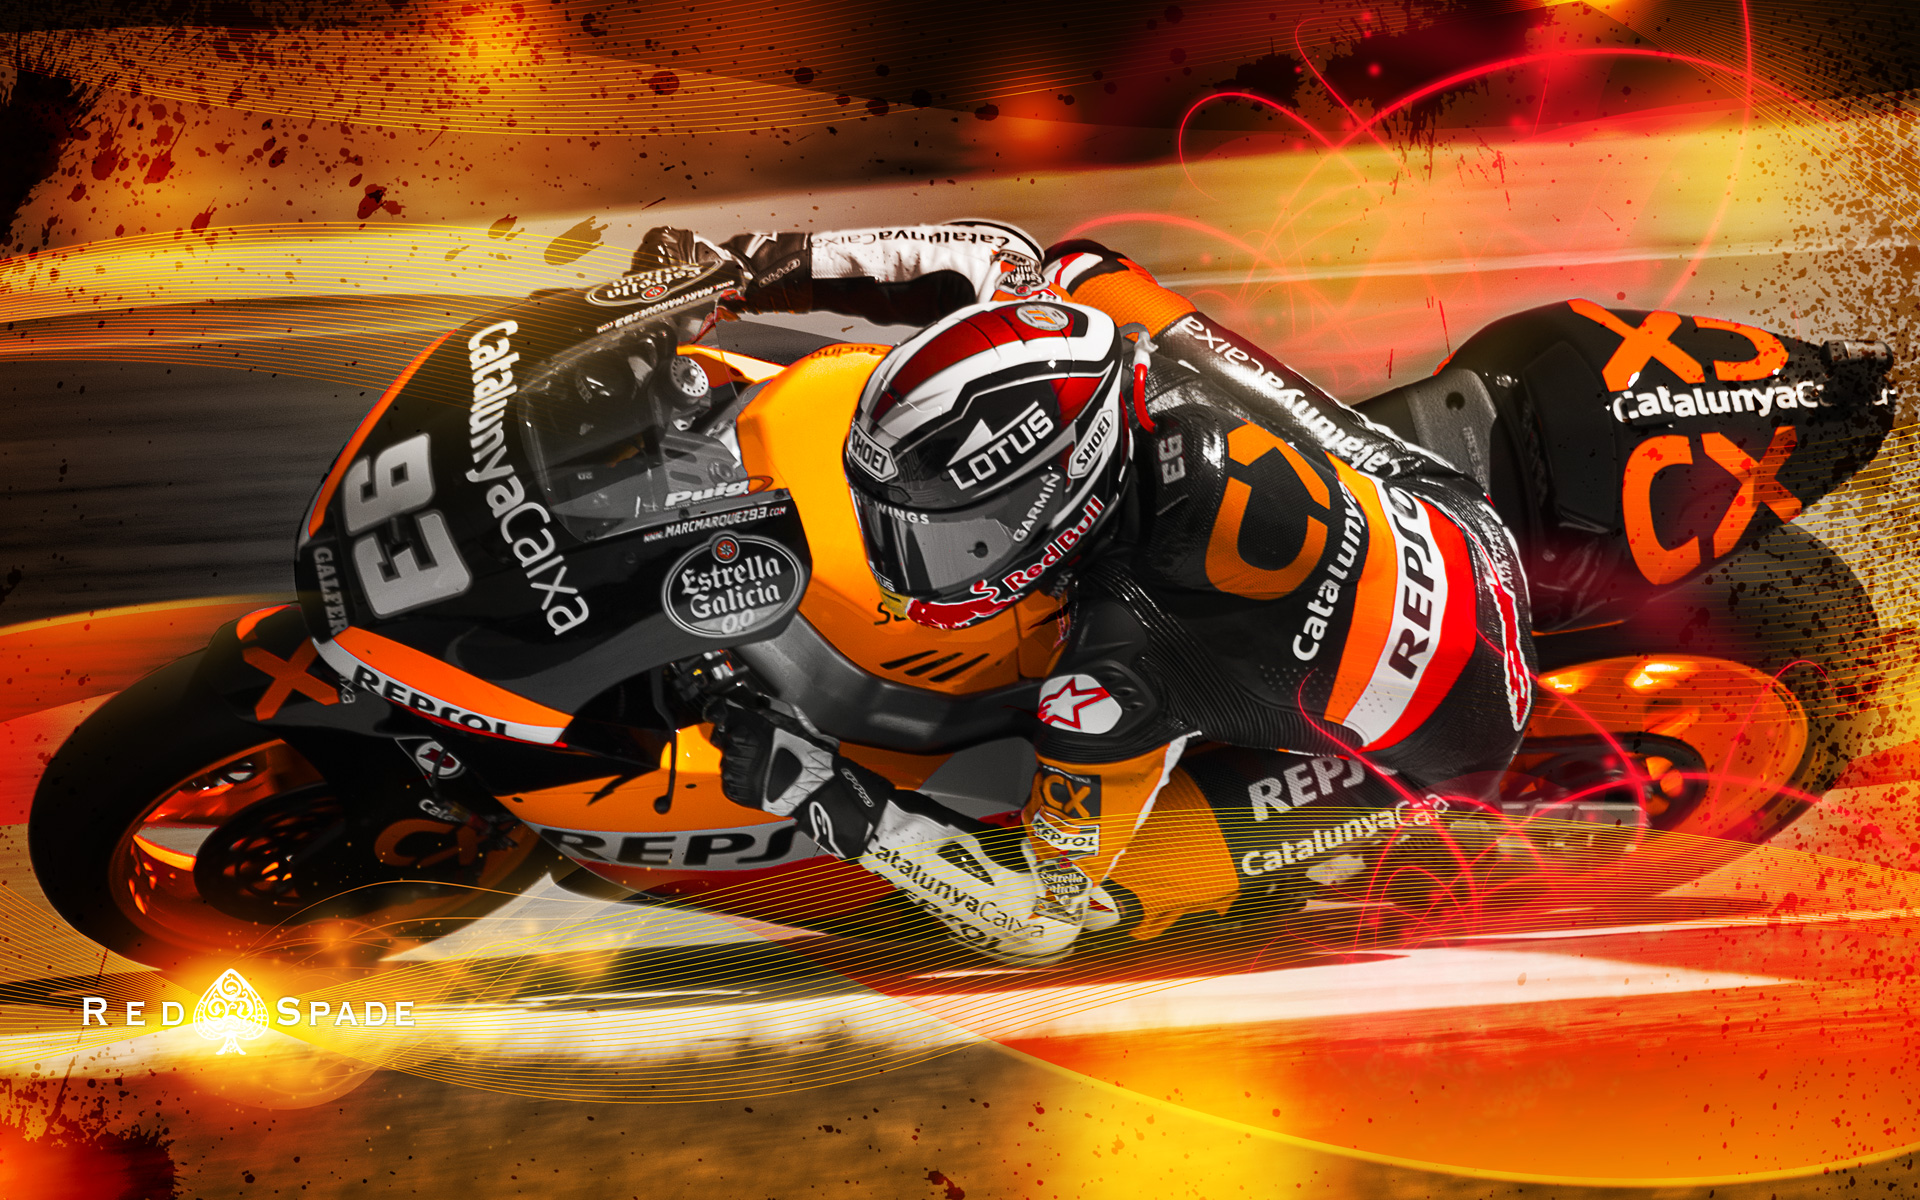 Marc-Marquez-93-Wallpapers-hd-Honda-Repsol-08